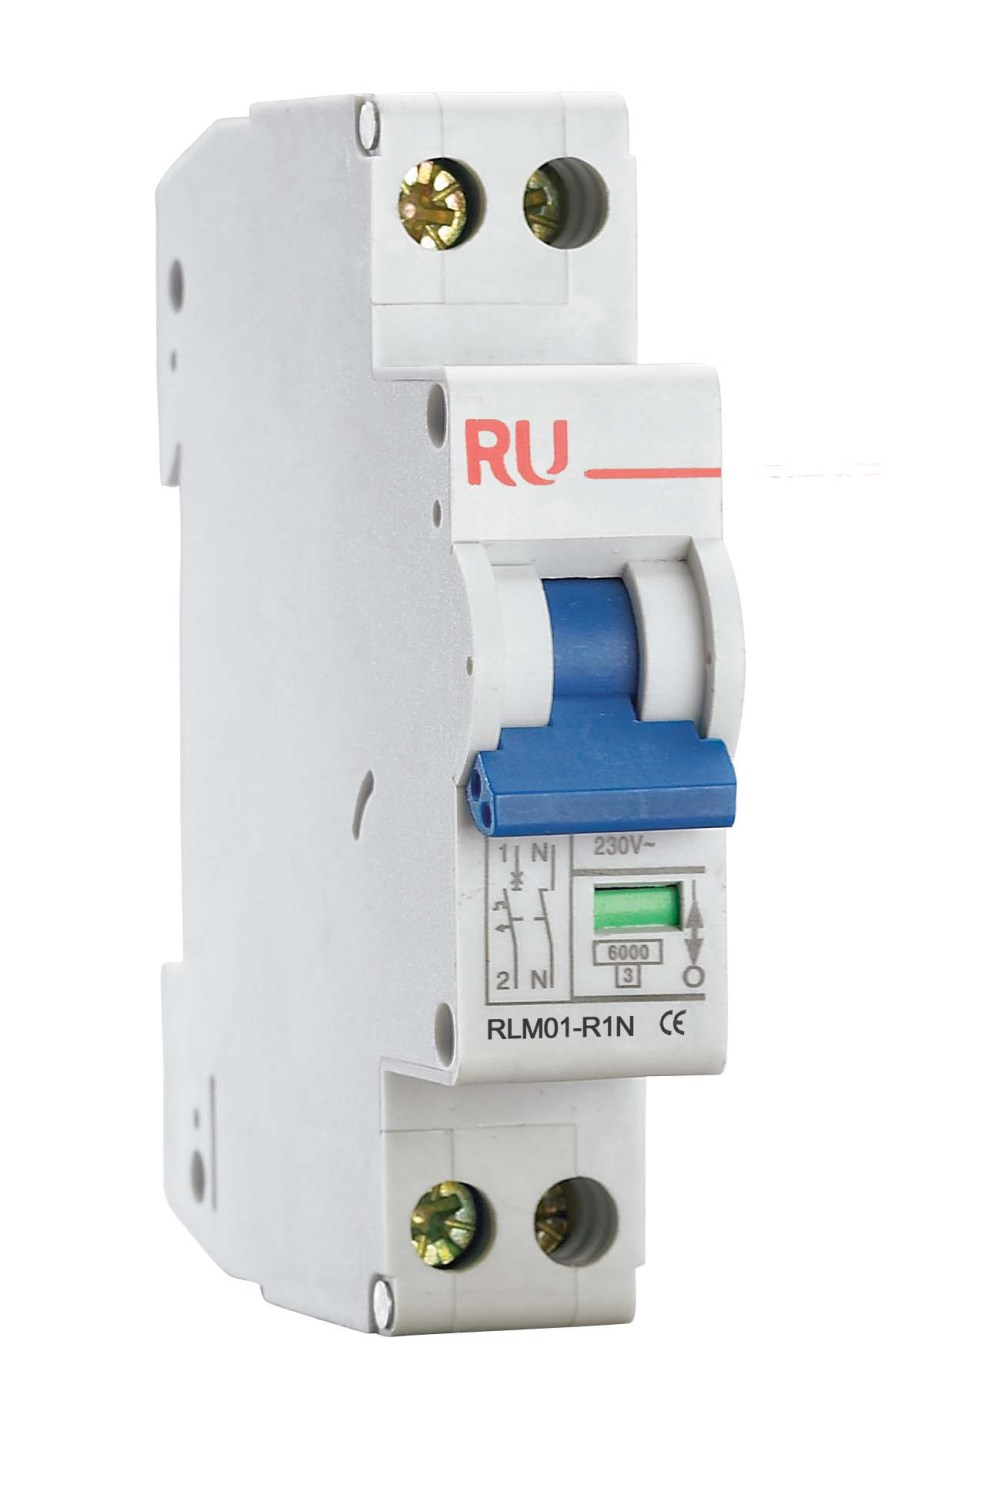 medium resolution of this is an mcb minature circuit breaker which is an automatic protection device in the fusebox that switches off a circuit if they detect a fault